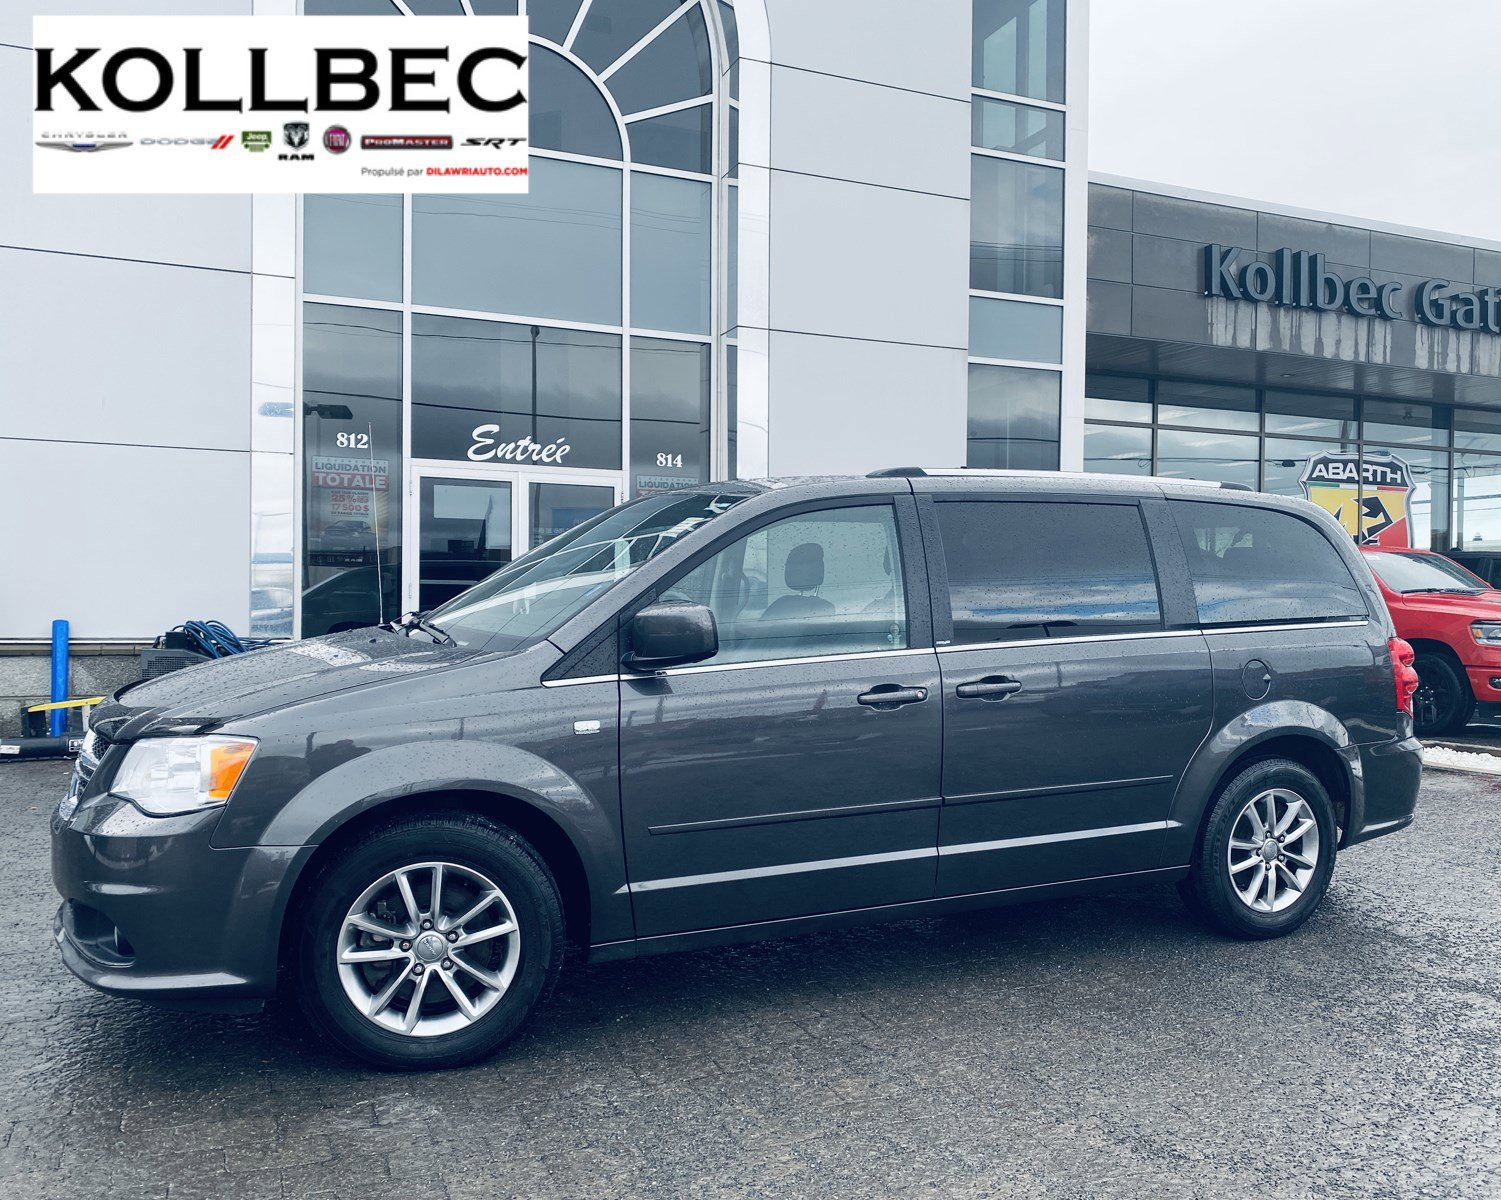 Dodge Grand Caravan Mini-van, Passenger - 2014